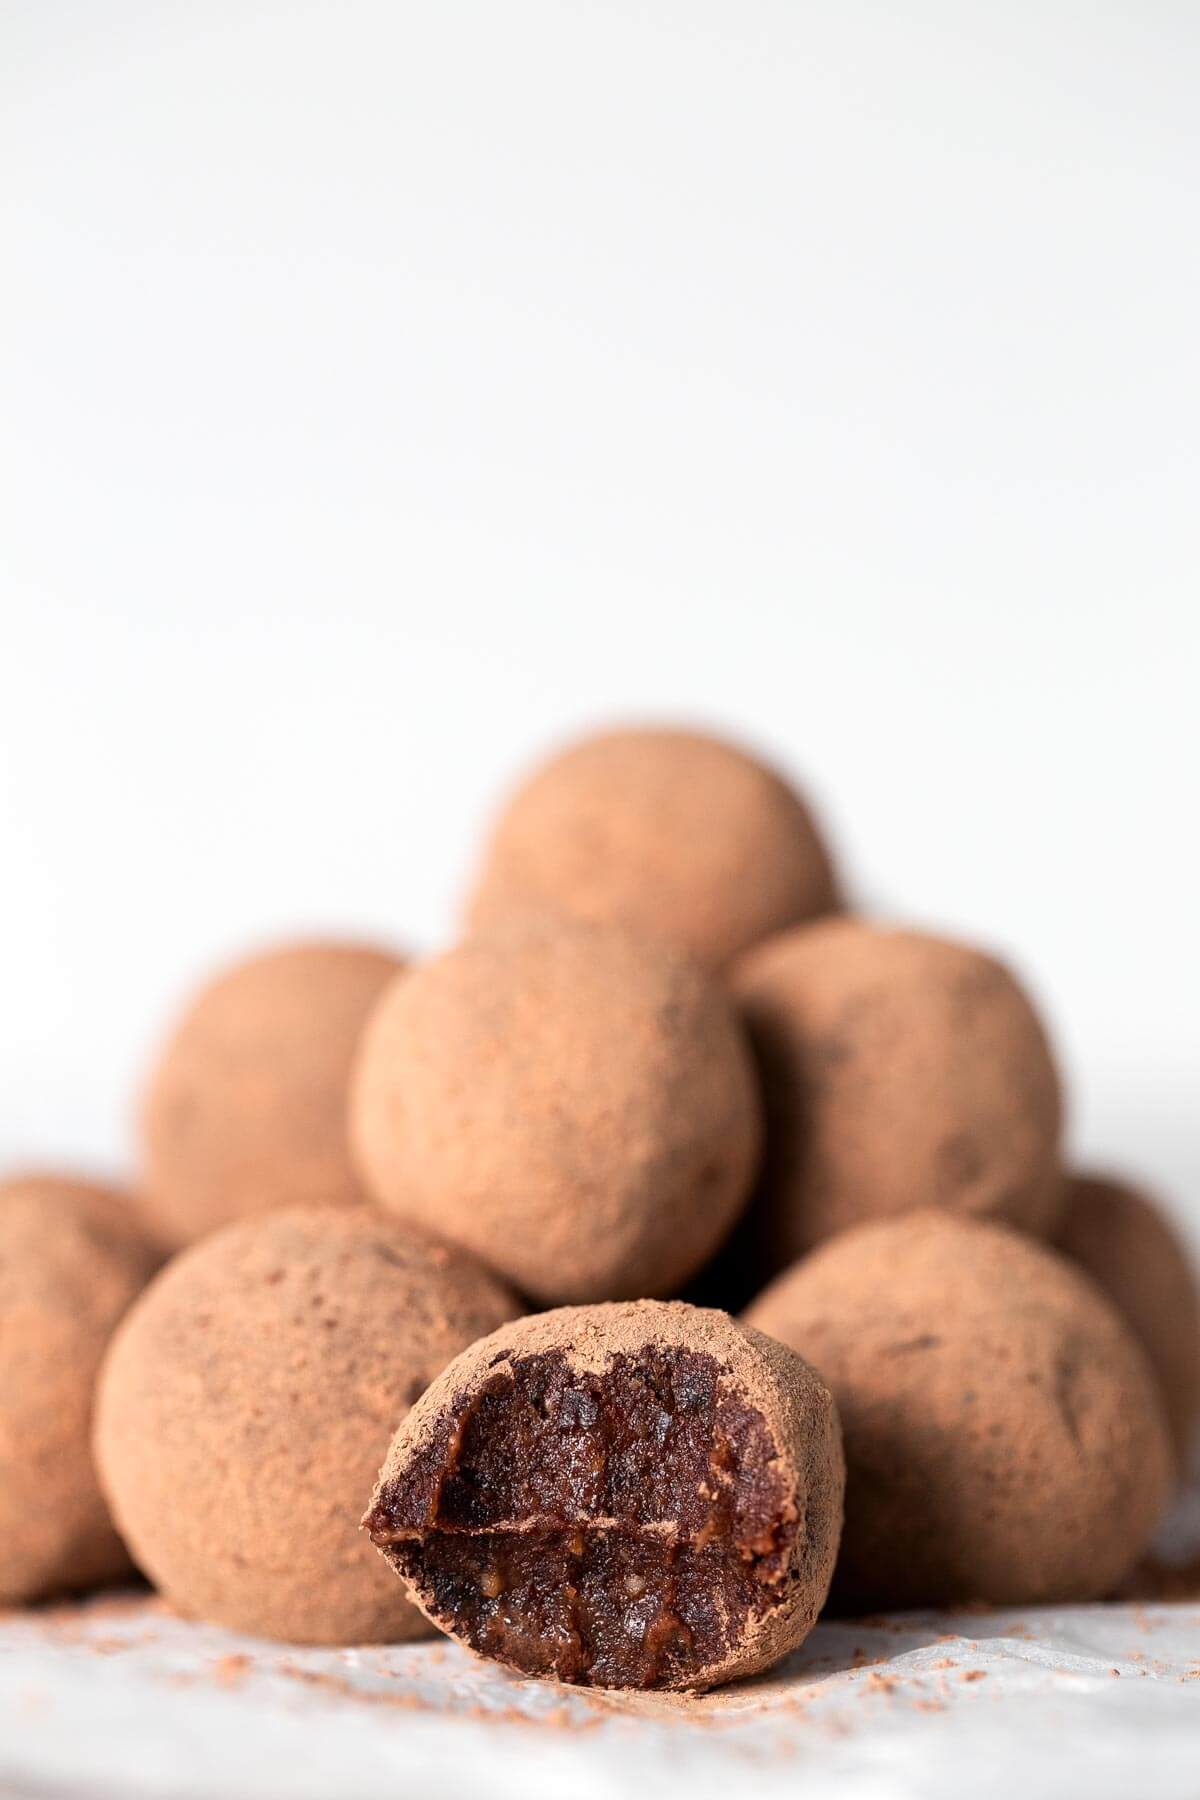 Vegan Chocolate and Orange Truffles. - These vegan chocolate orange truffles are to die for. They are a straightforward, healthy and attractive dessert.